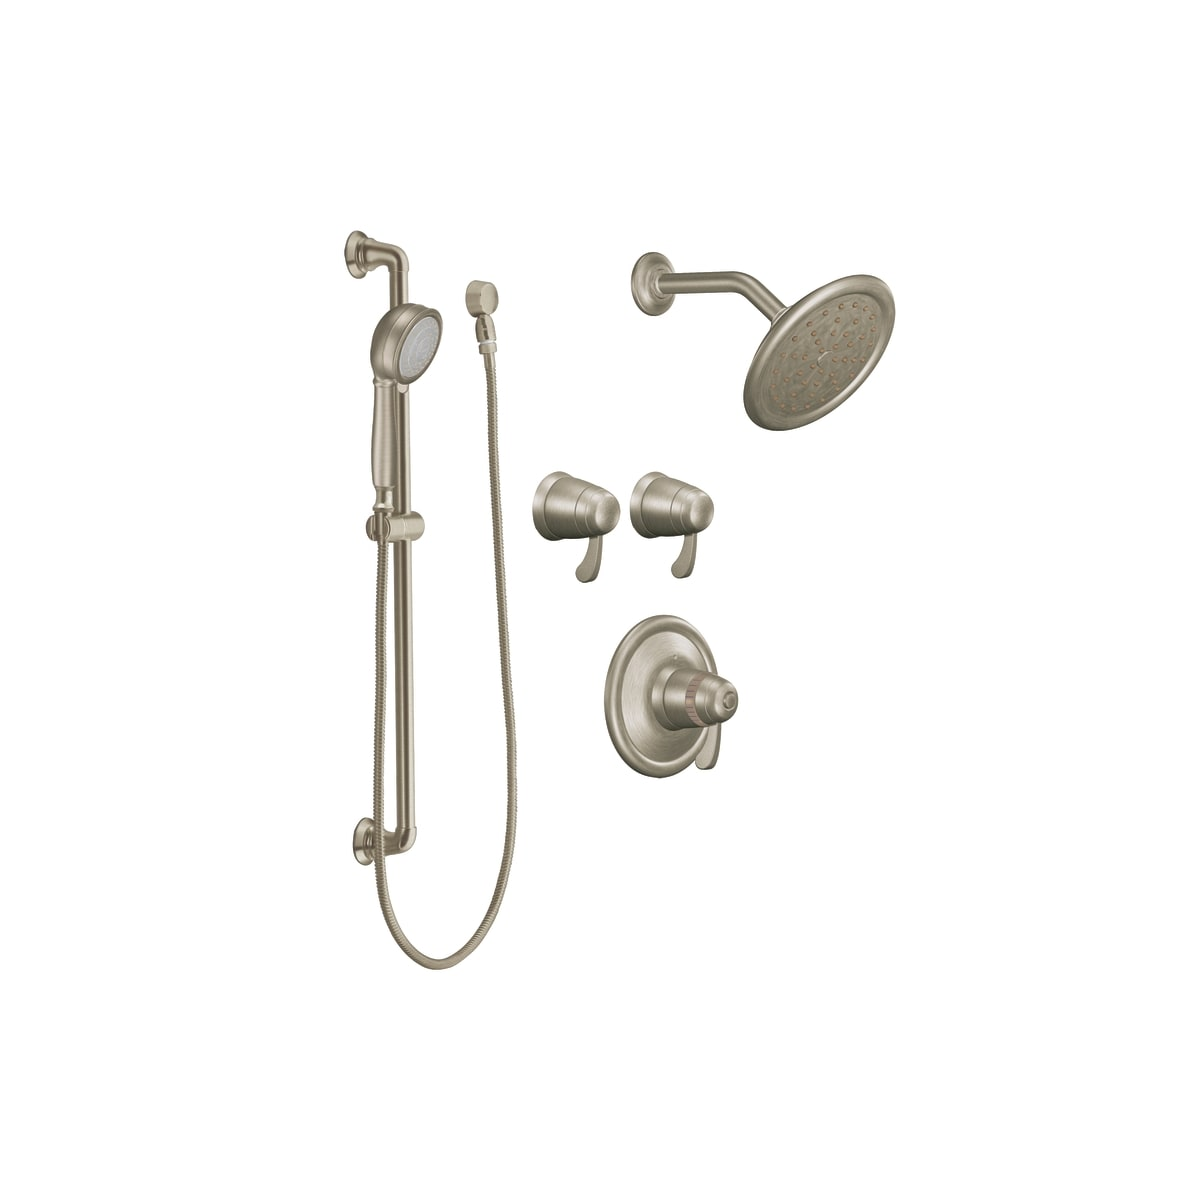 Moen Brushed Nickel Triple Handle Vertical Spa Trim With Hand Shower From  The Exacttemp Collection Jpg